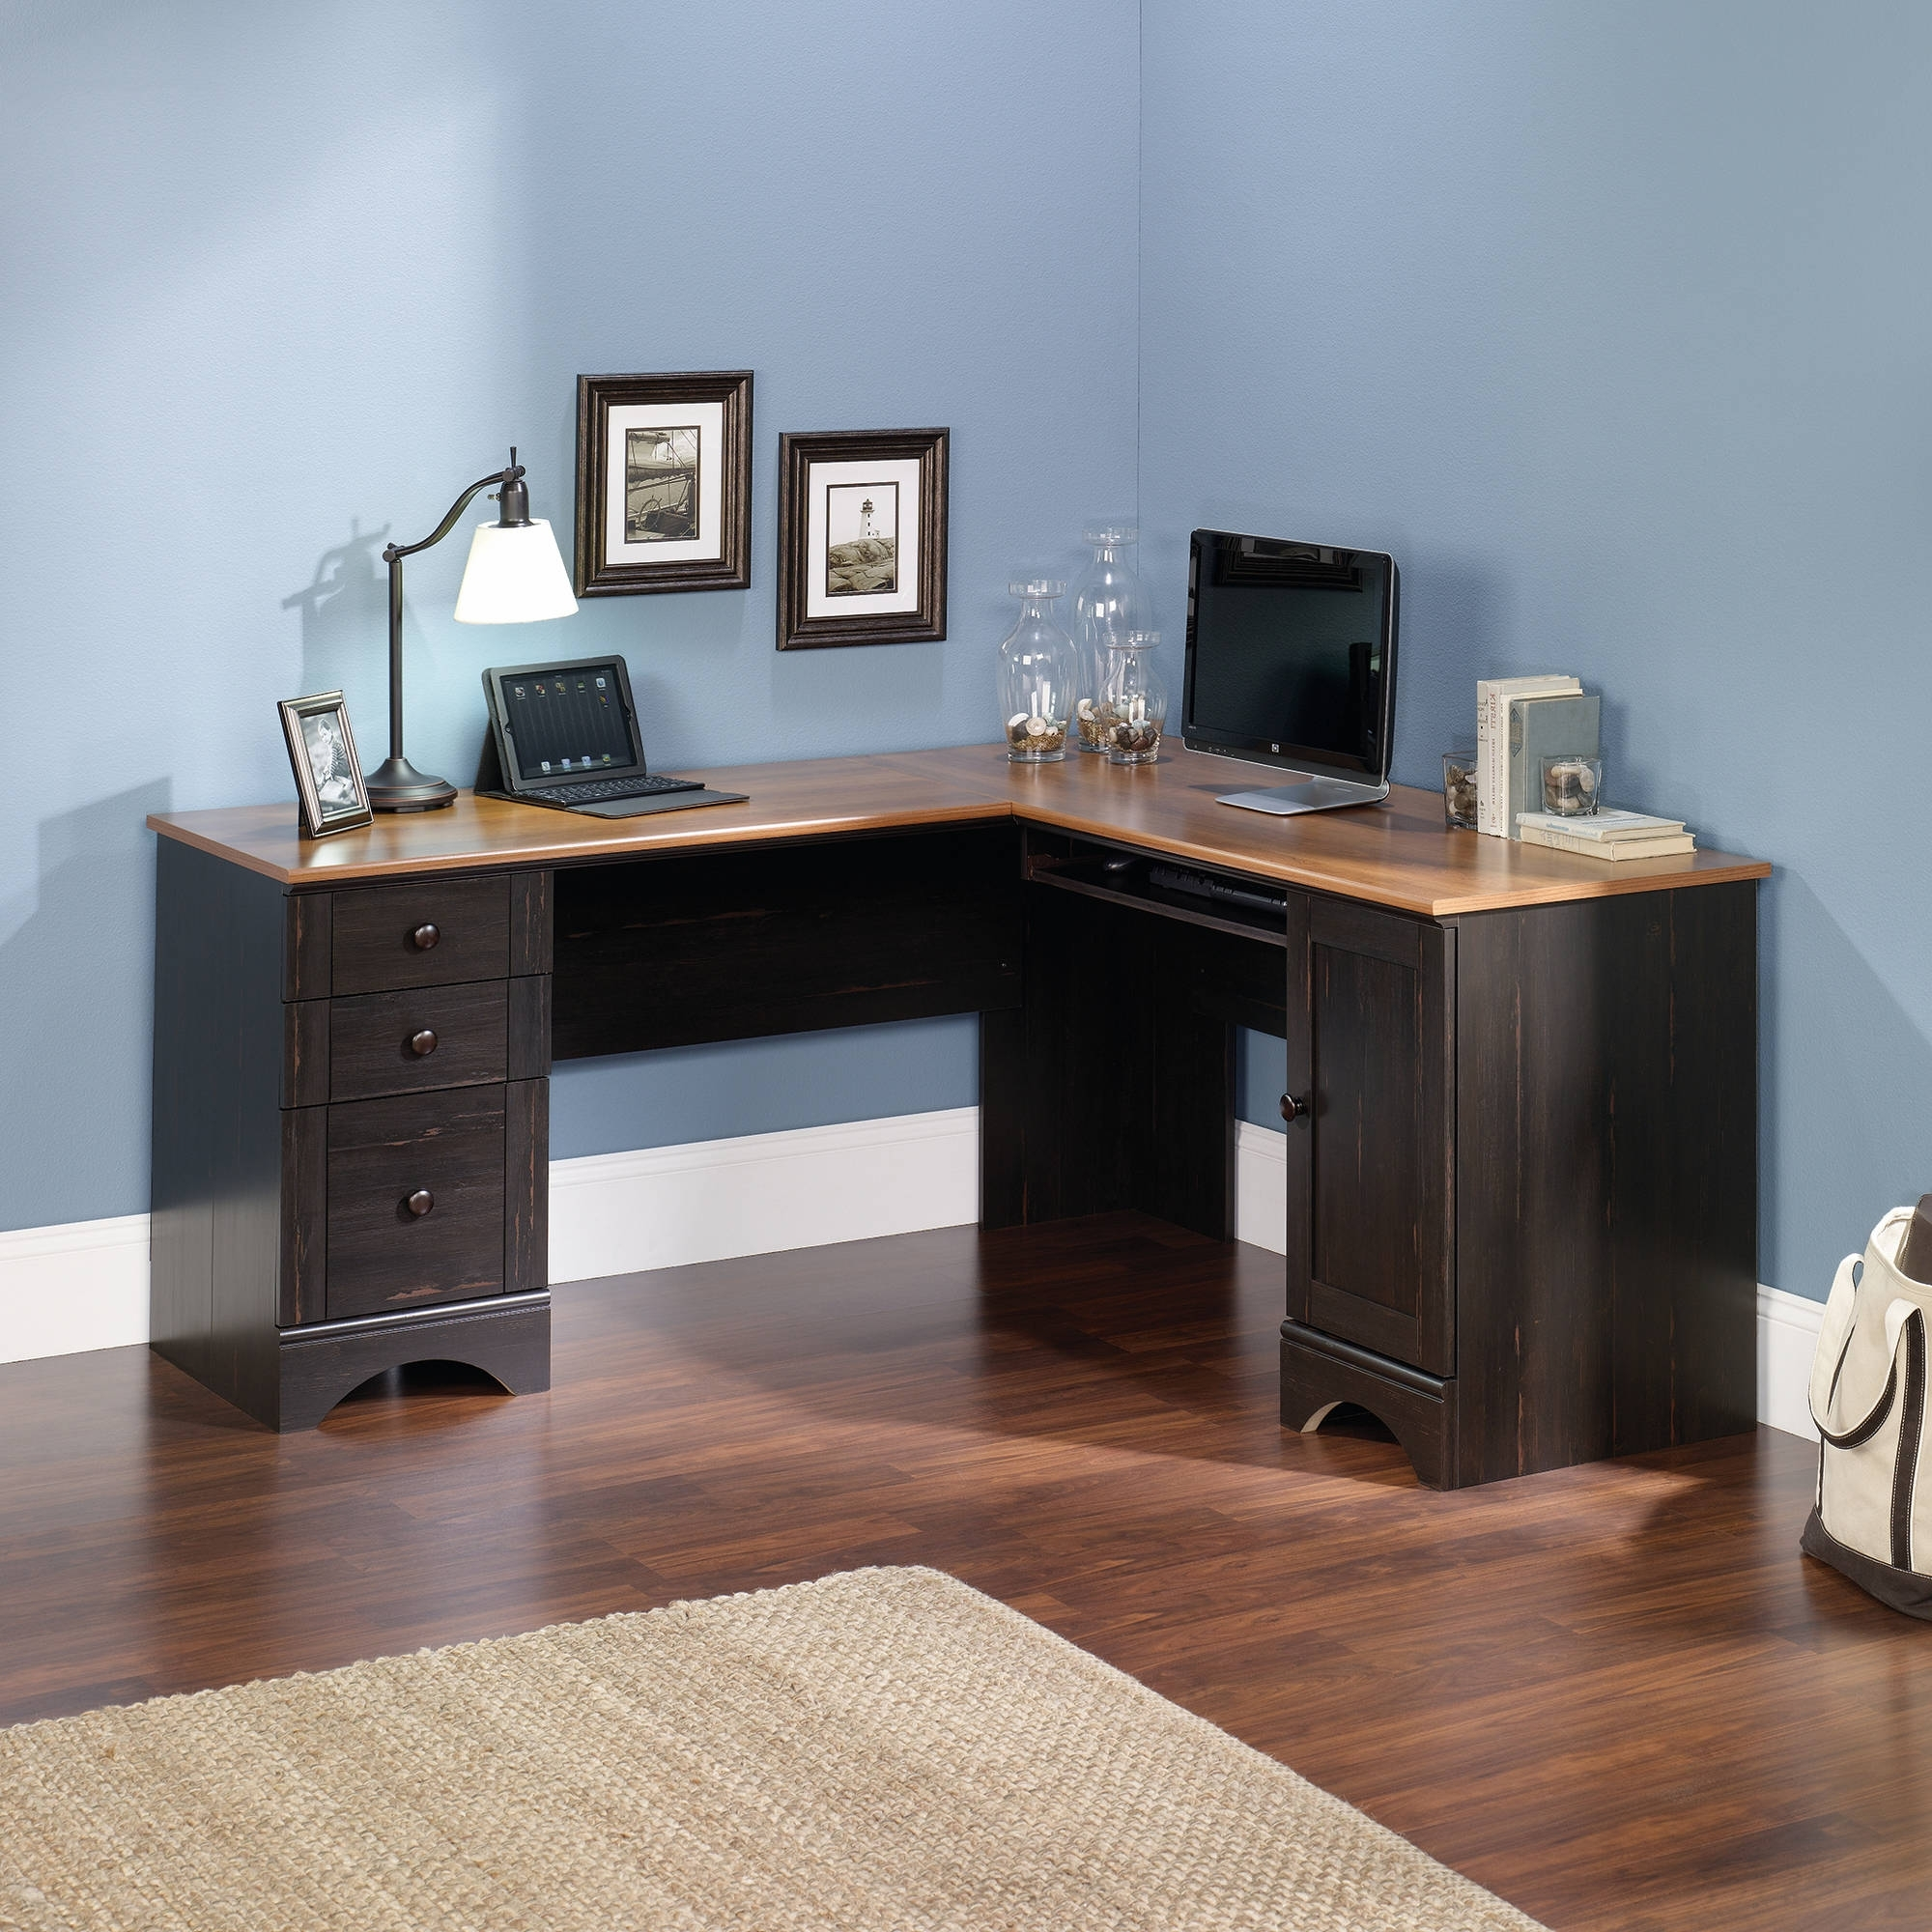 View Gallery Of Computer Desks At Walmart Showing 3 Of 20 Photos